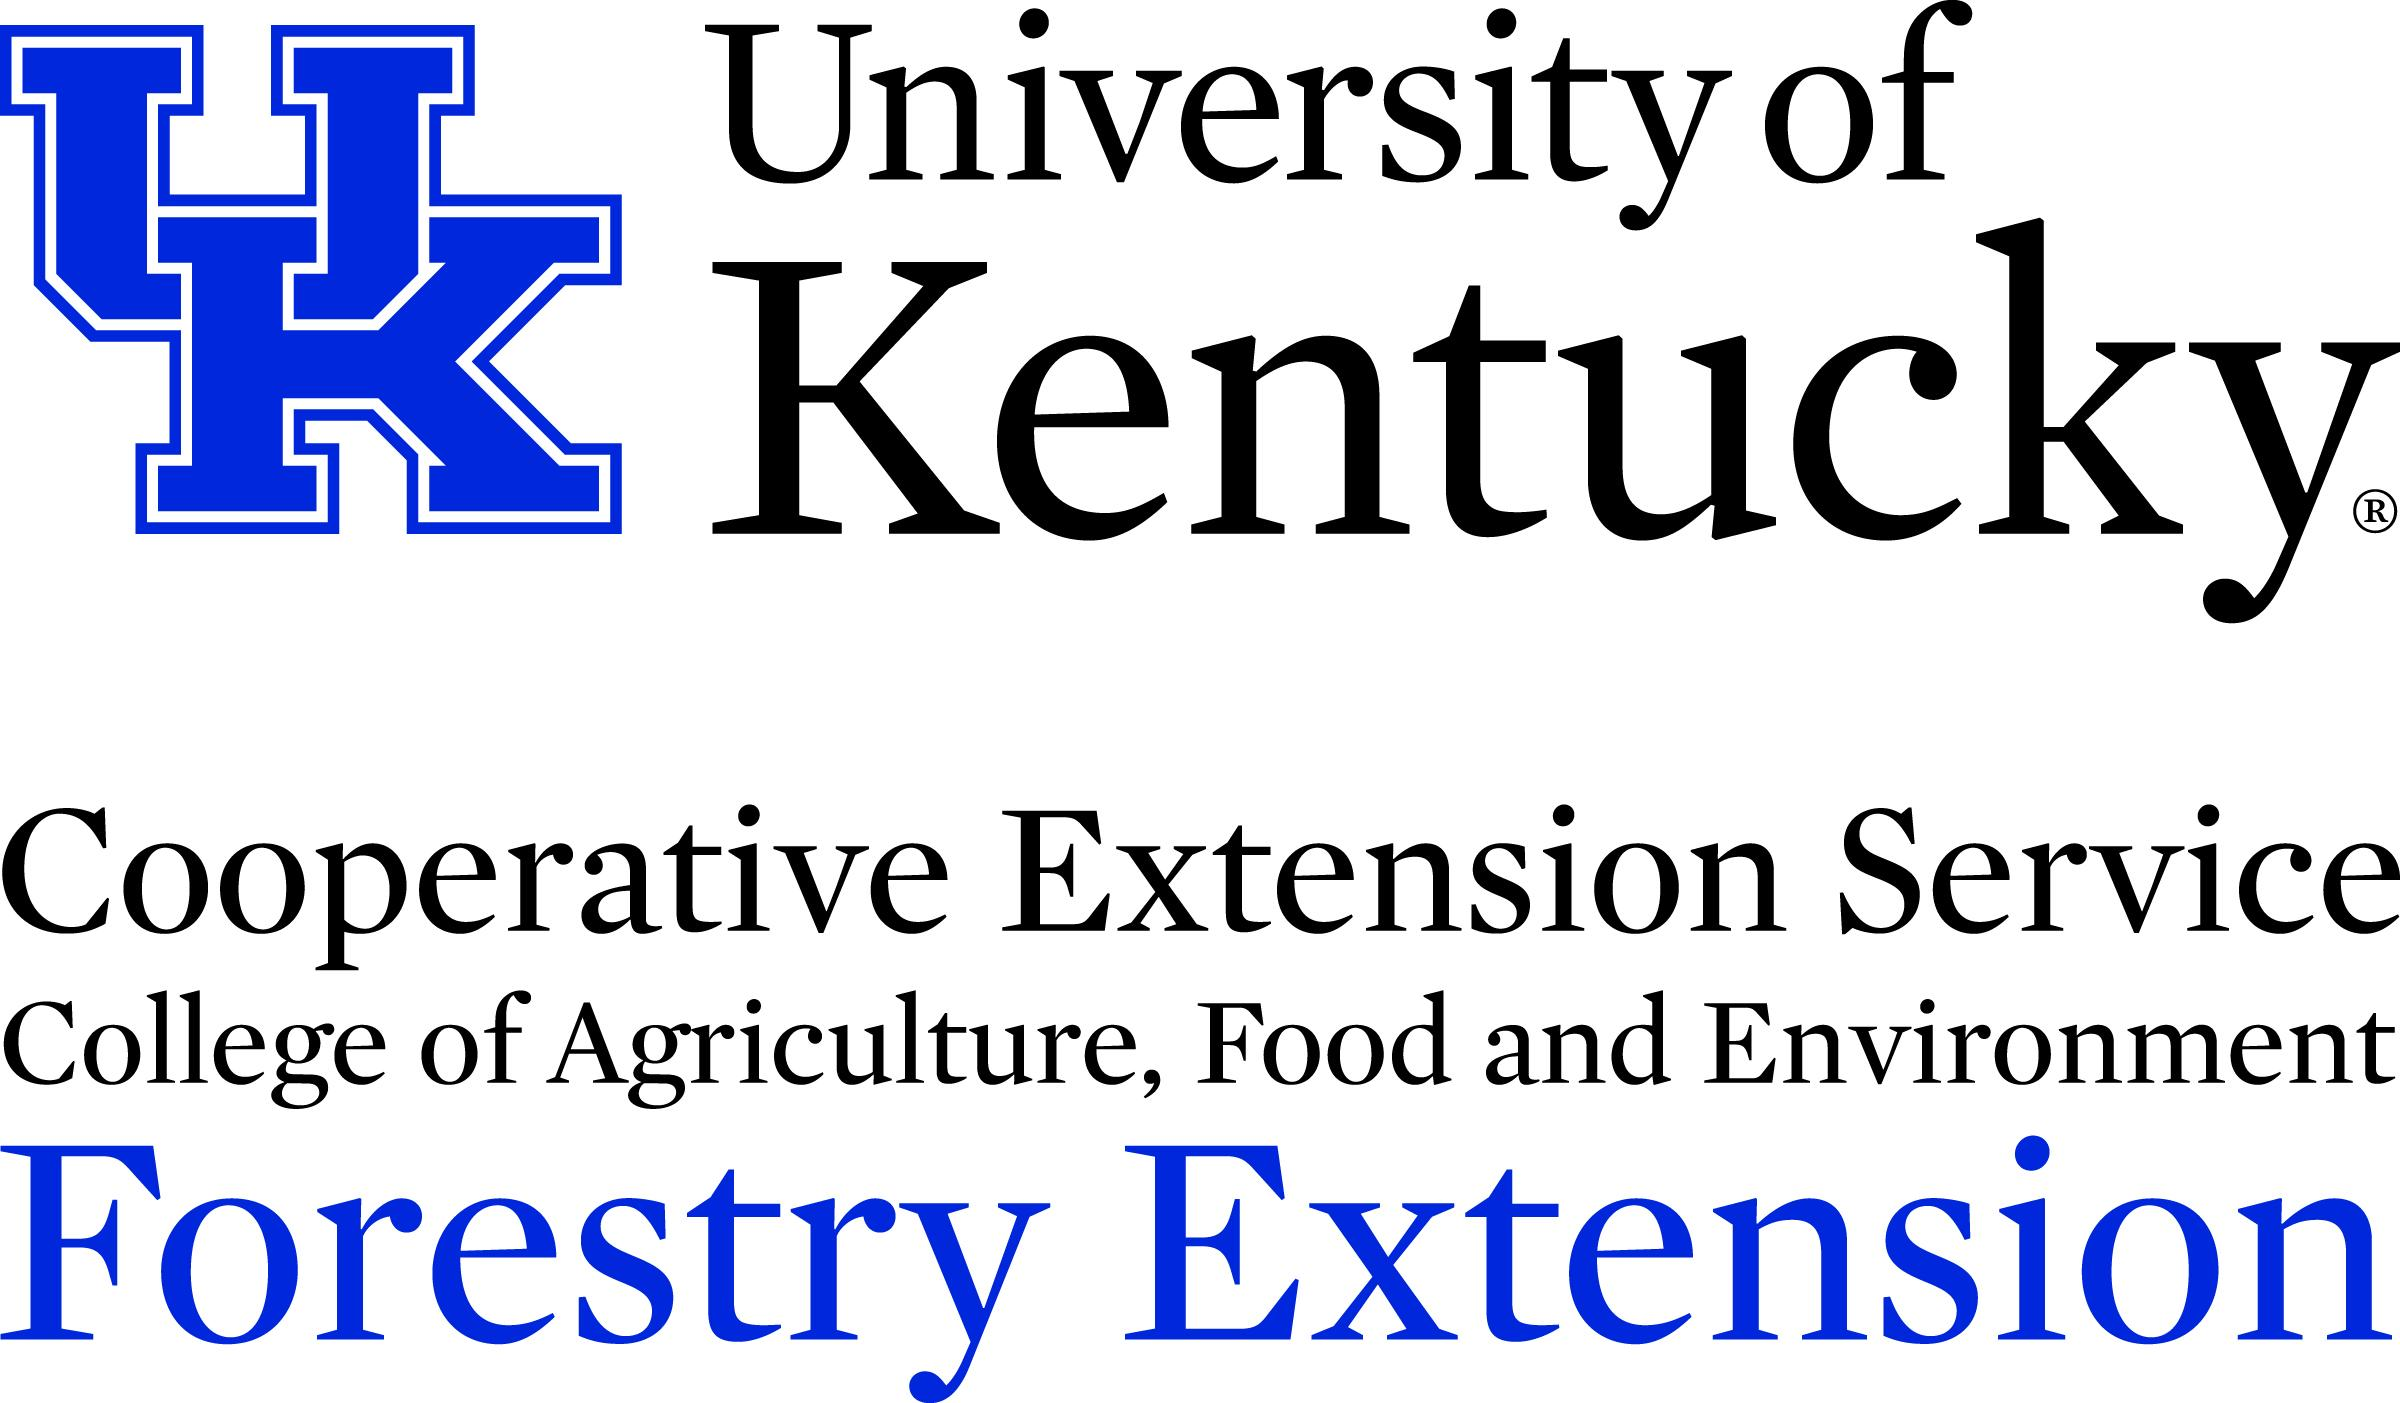 UK Forestry Extension Logo